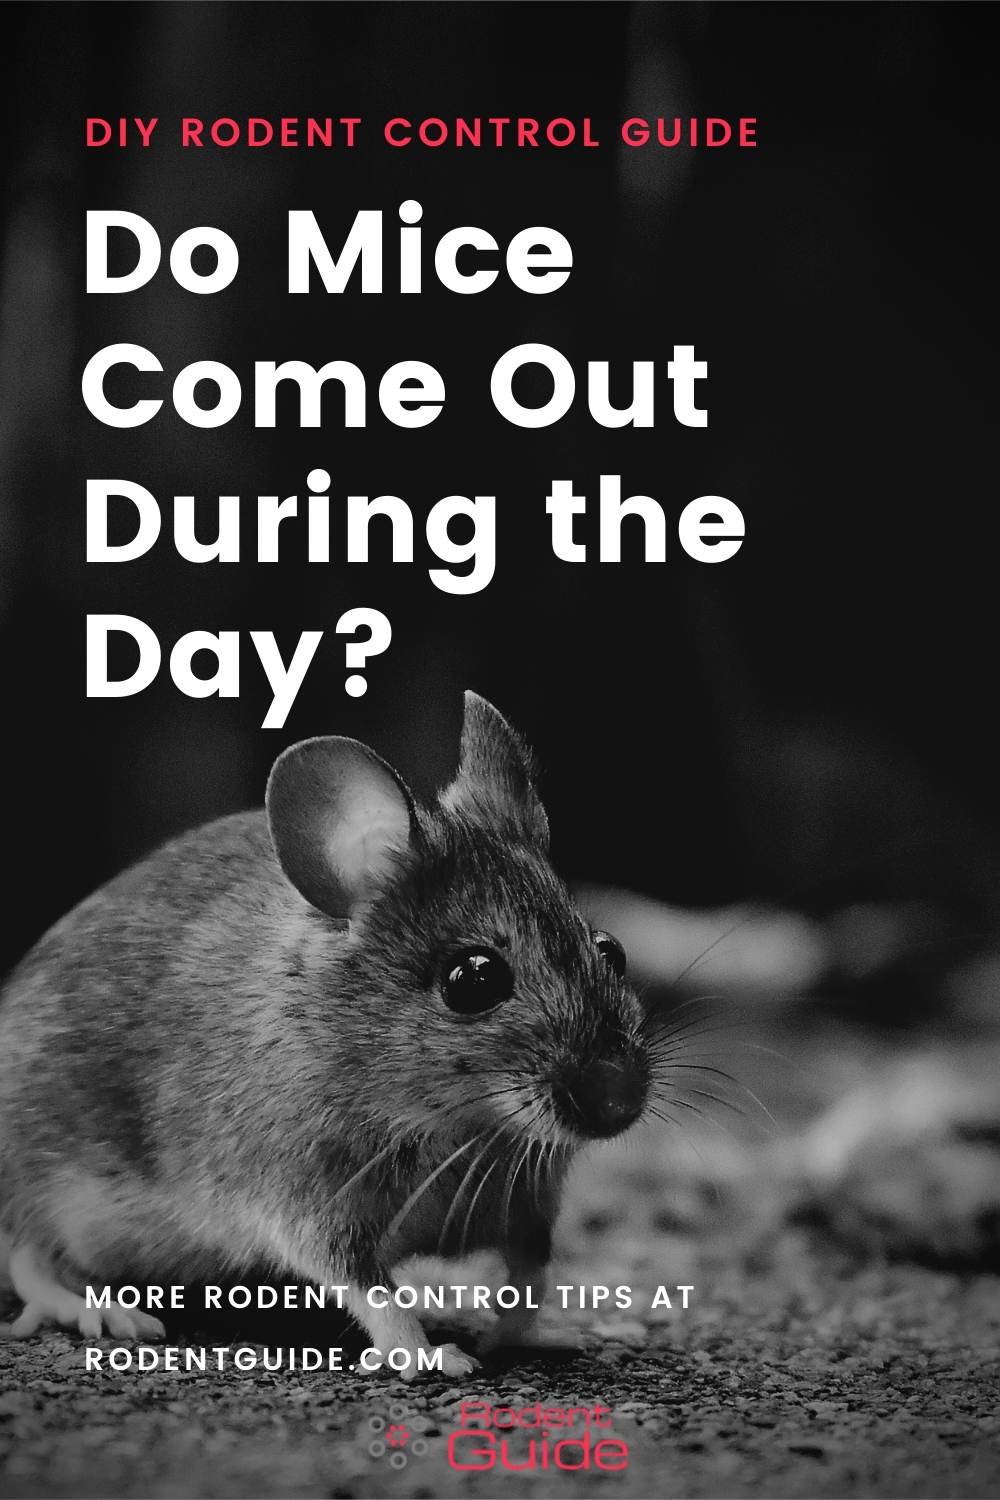 Why Do Mice Come Out During the Day